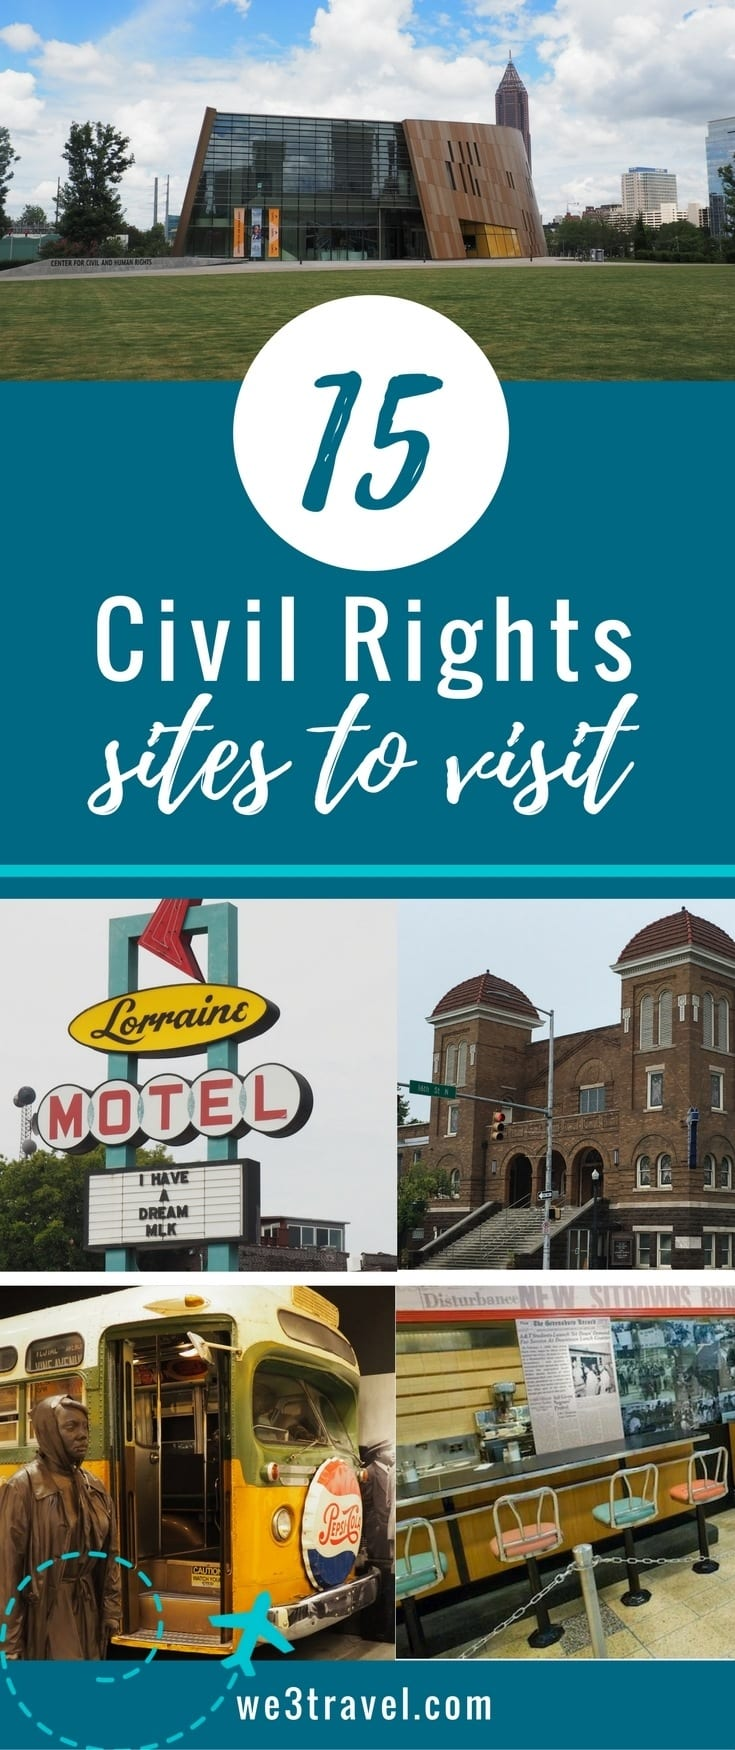 15 Civil Rights sites to visit with your kids. Teach the kids about Martin Luther King Jr. and other leaders of the civil rights movement in the United States at one or more of these museums and historic sites. #civilrights #marthinlutherking #mlk